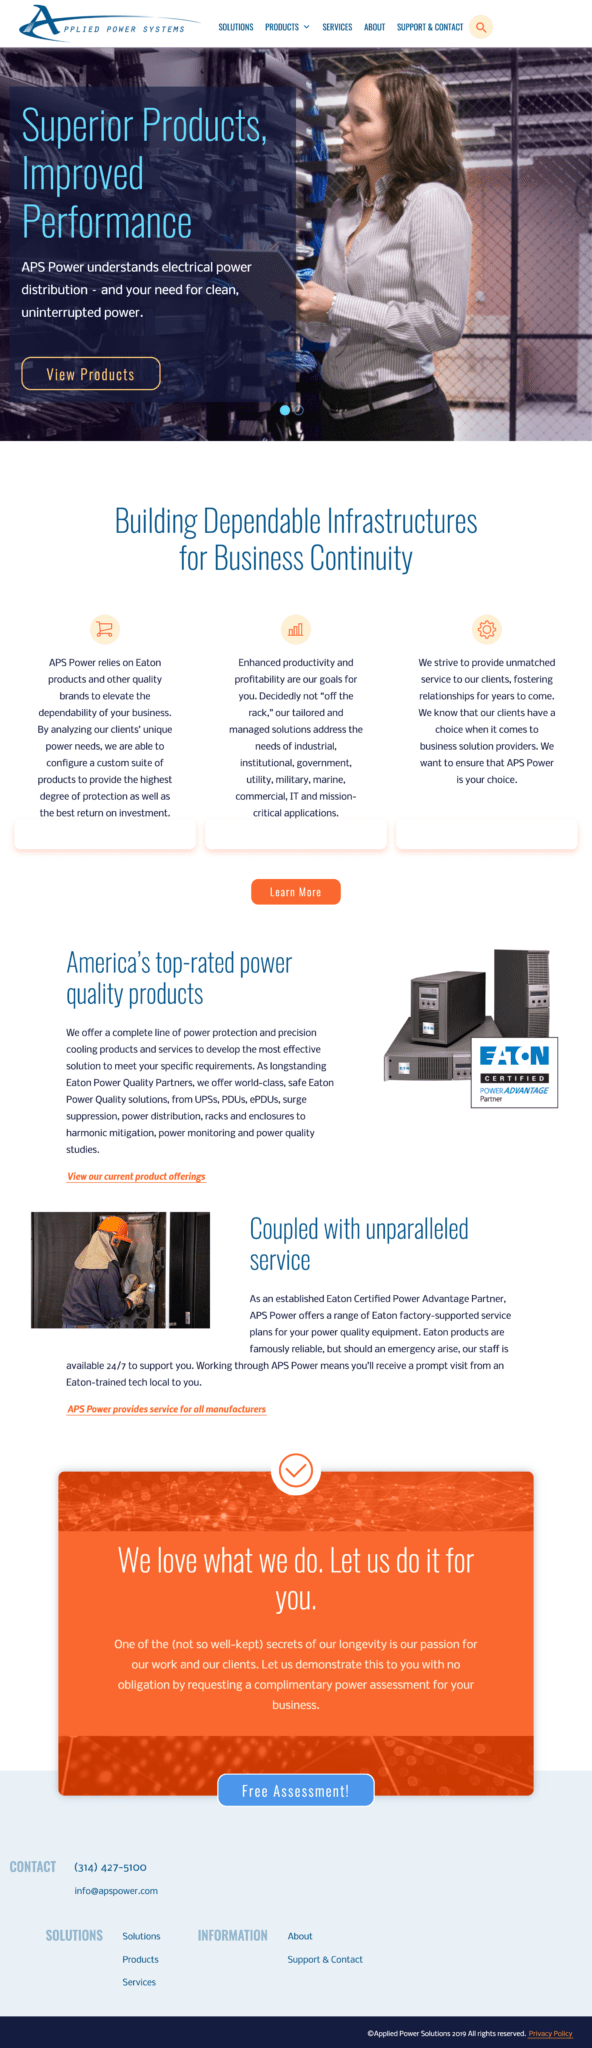 Tablet screenshot of the redesigned homepage for Applied Power Systems